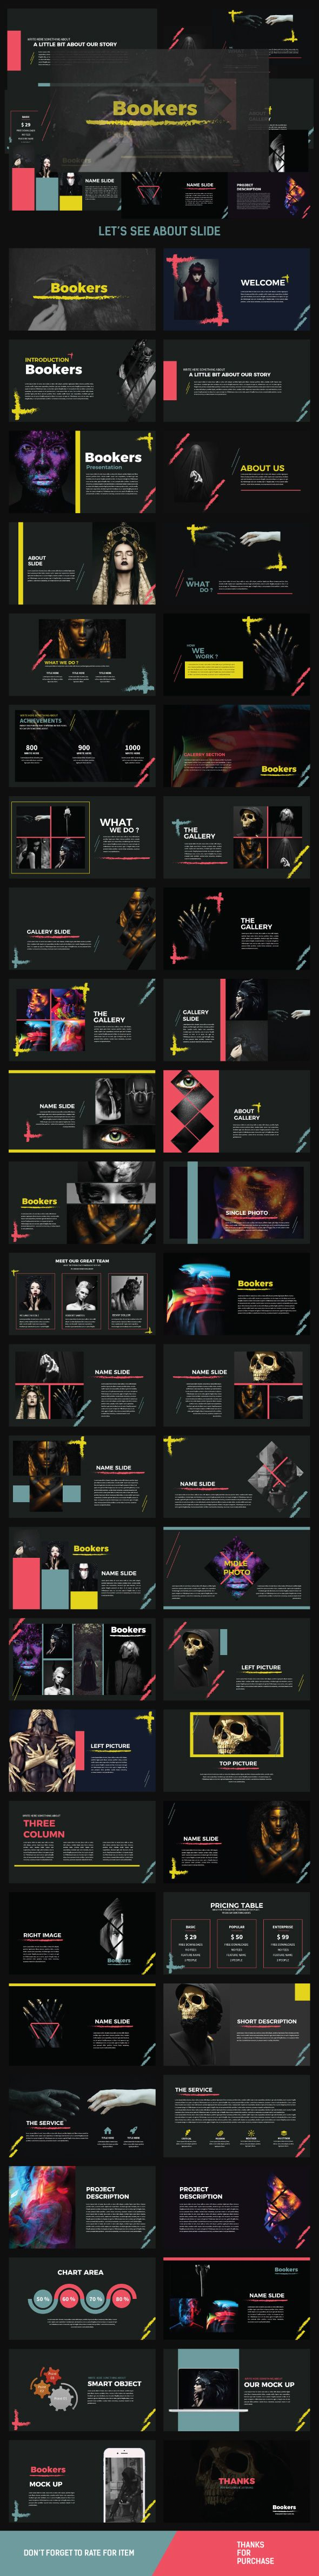 BOOKERS Power Point Multipurpose - Creative #PowerPoint #Templates Download here: https://graphicriver.net/item/bookers-power-point-multipurpose/19697670?ref=alena994